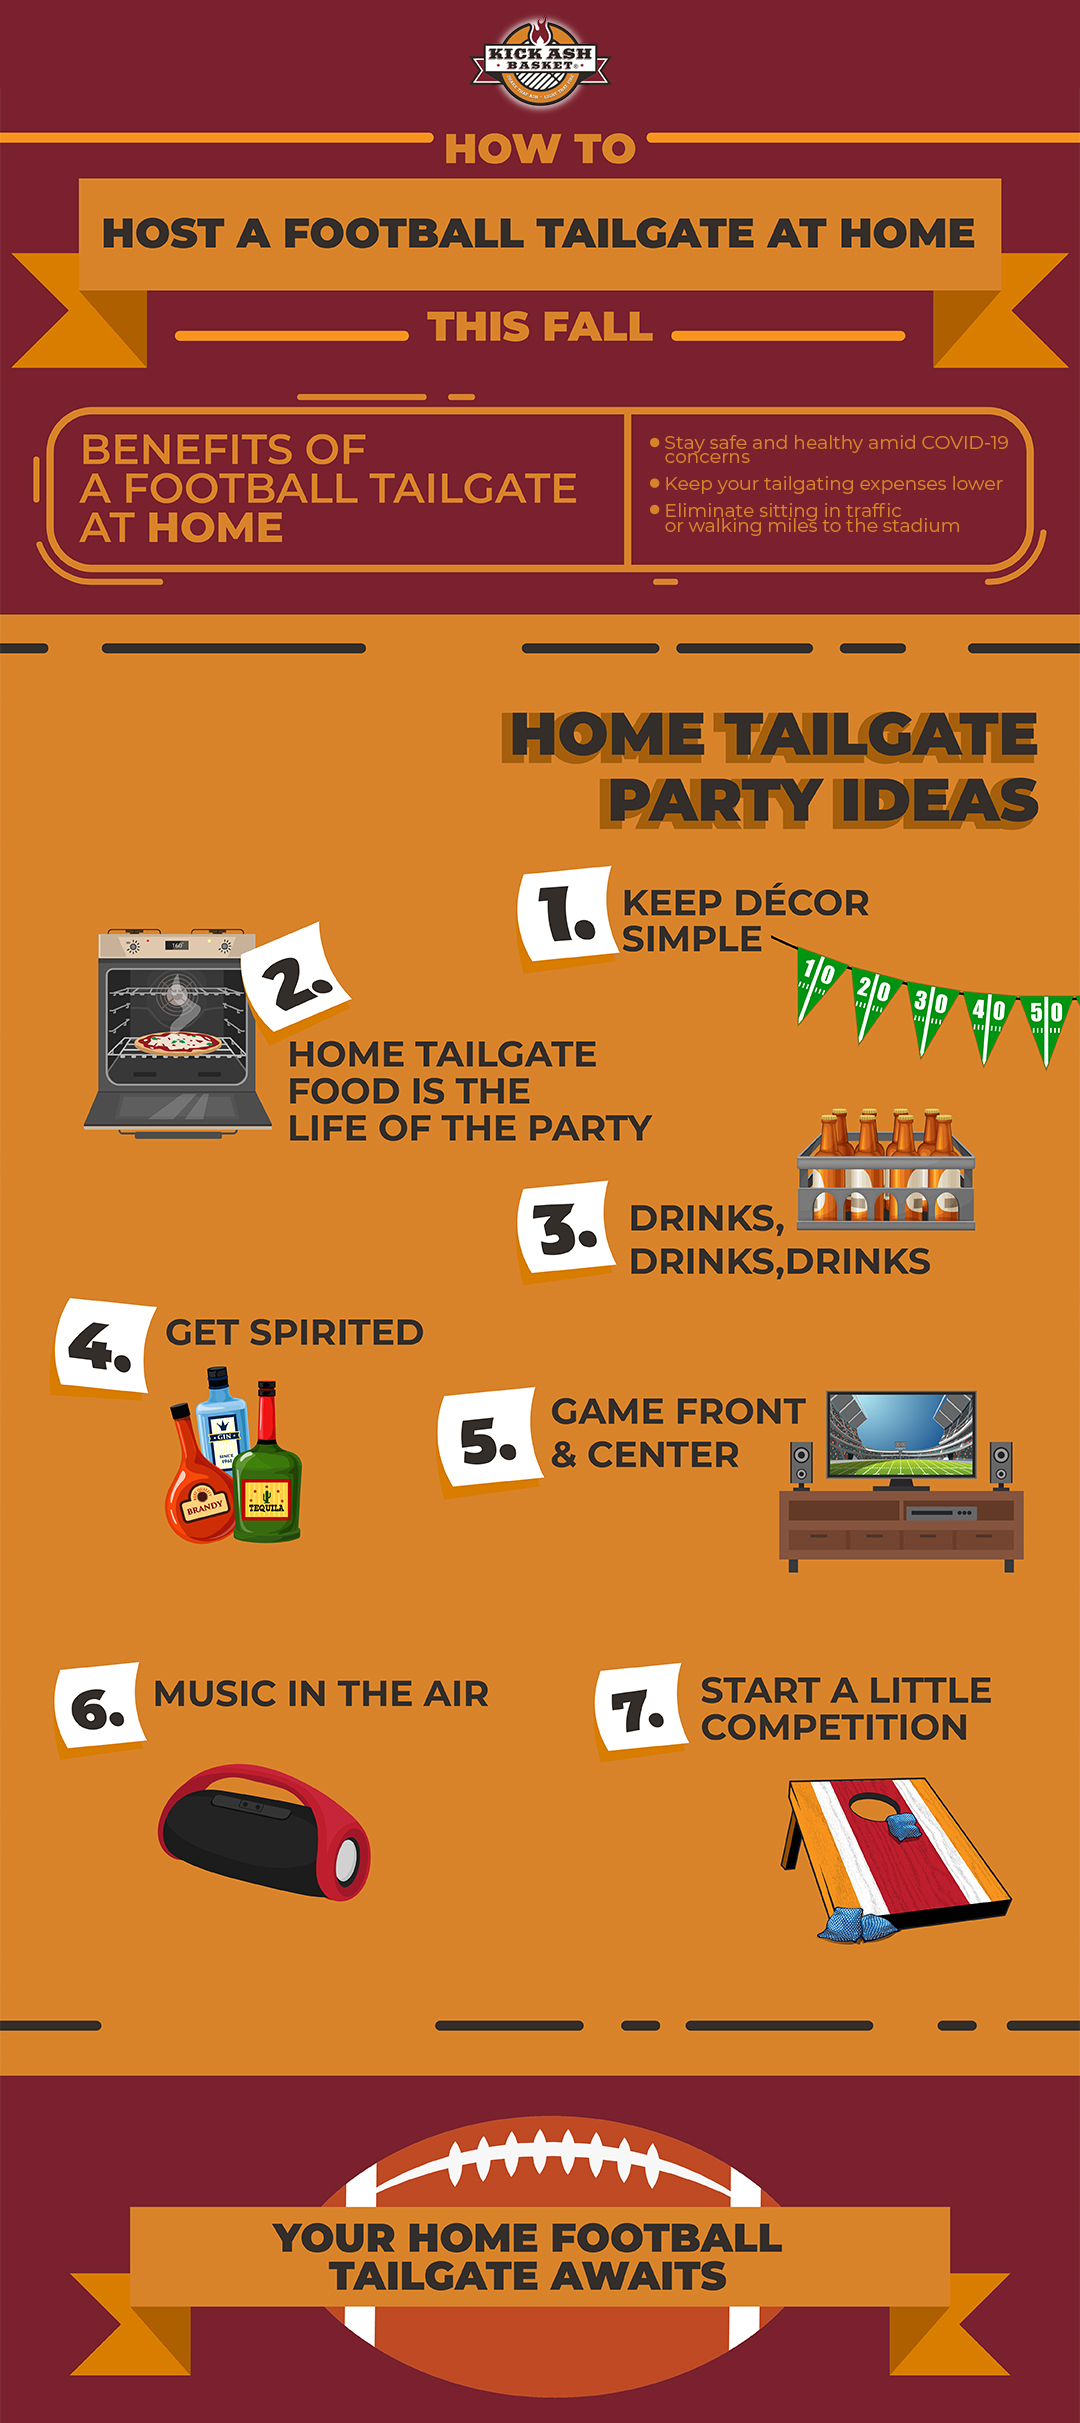 image guide on how to host a tailgate at home